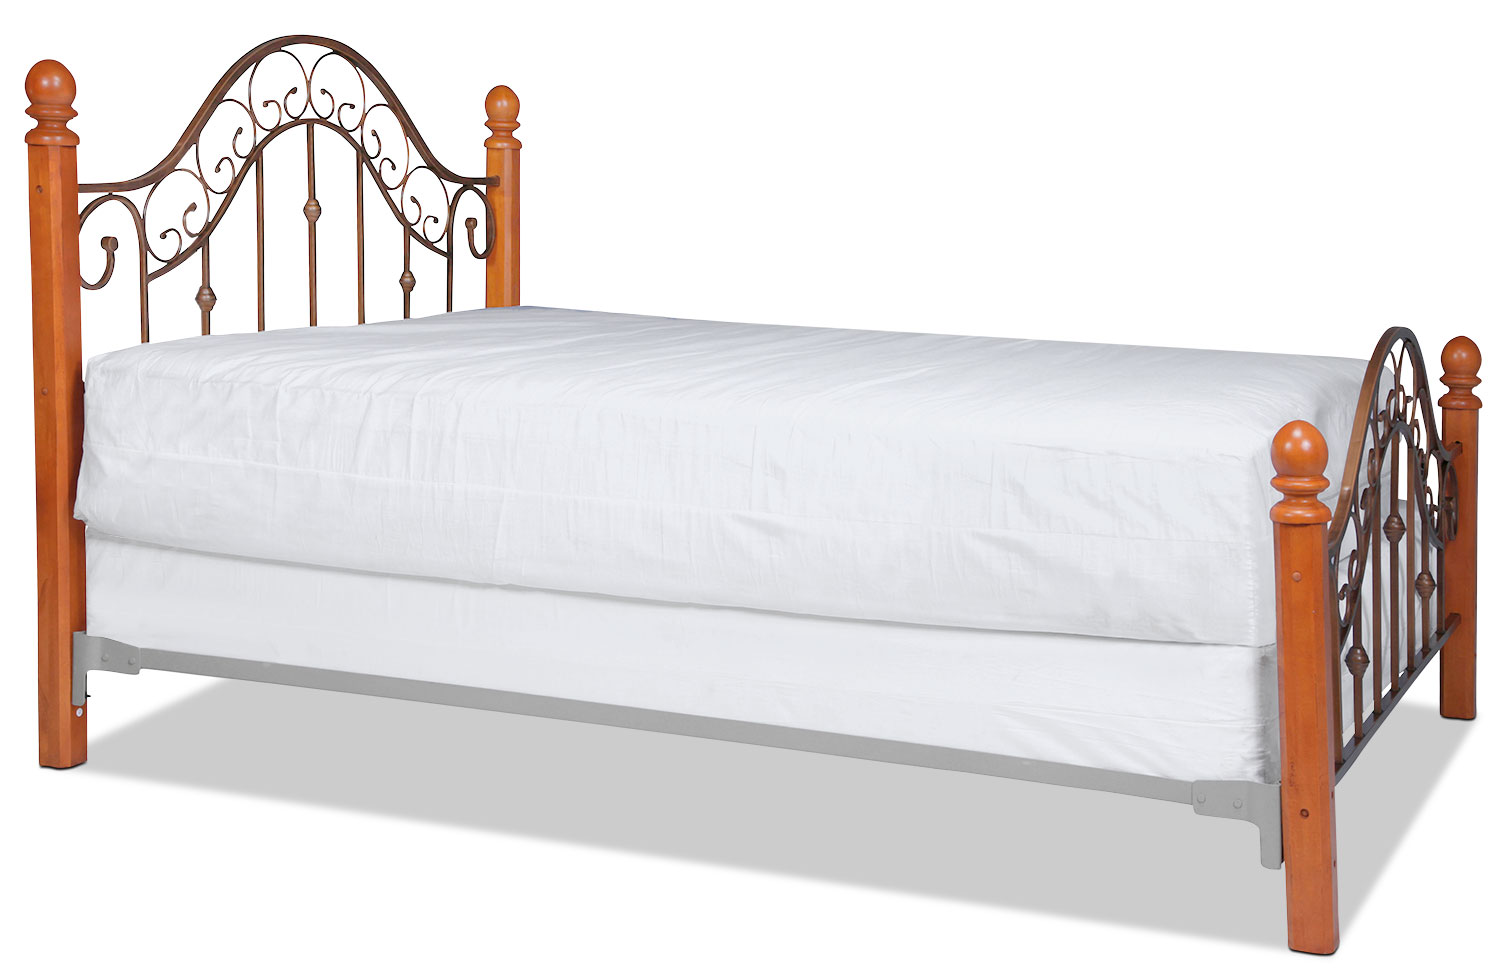 San Marco King Bed - Brown Copper